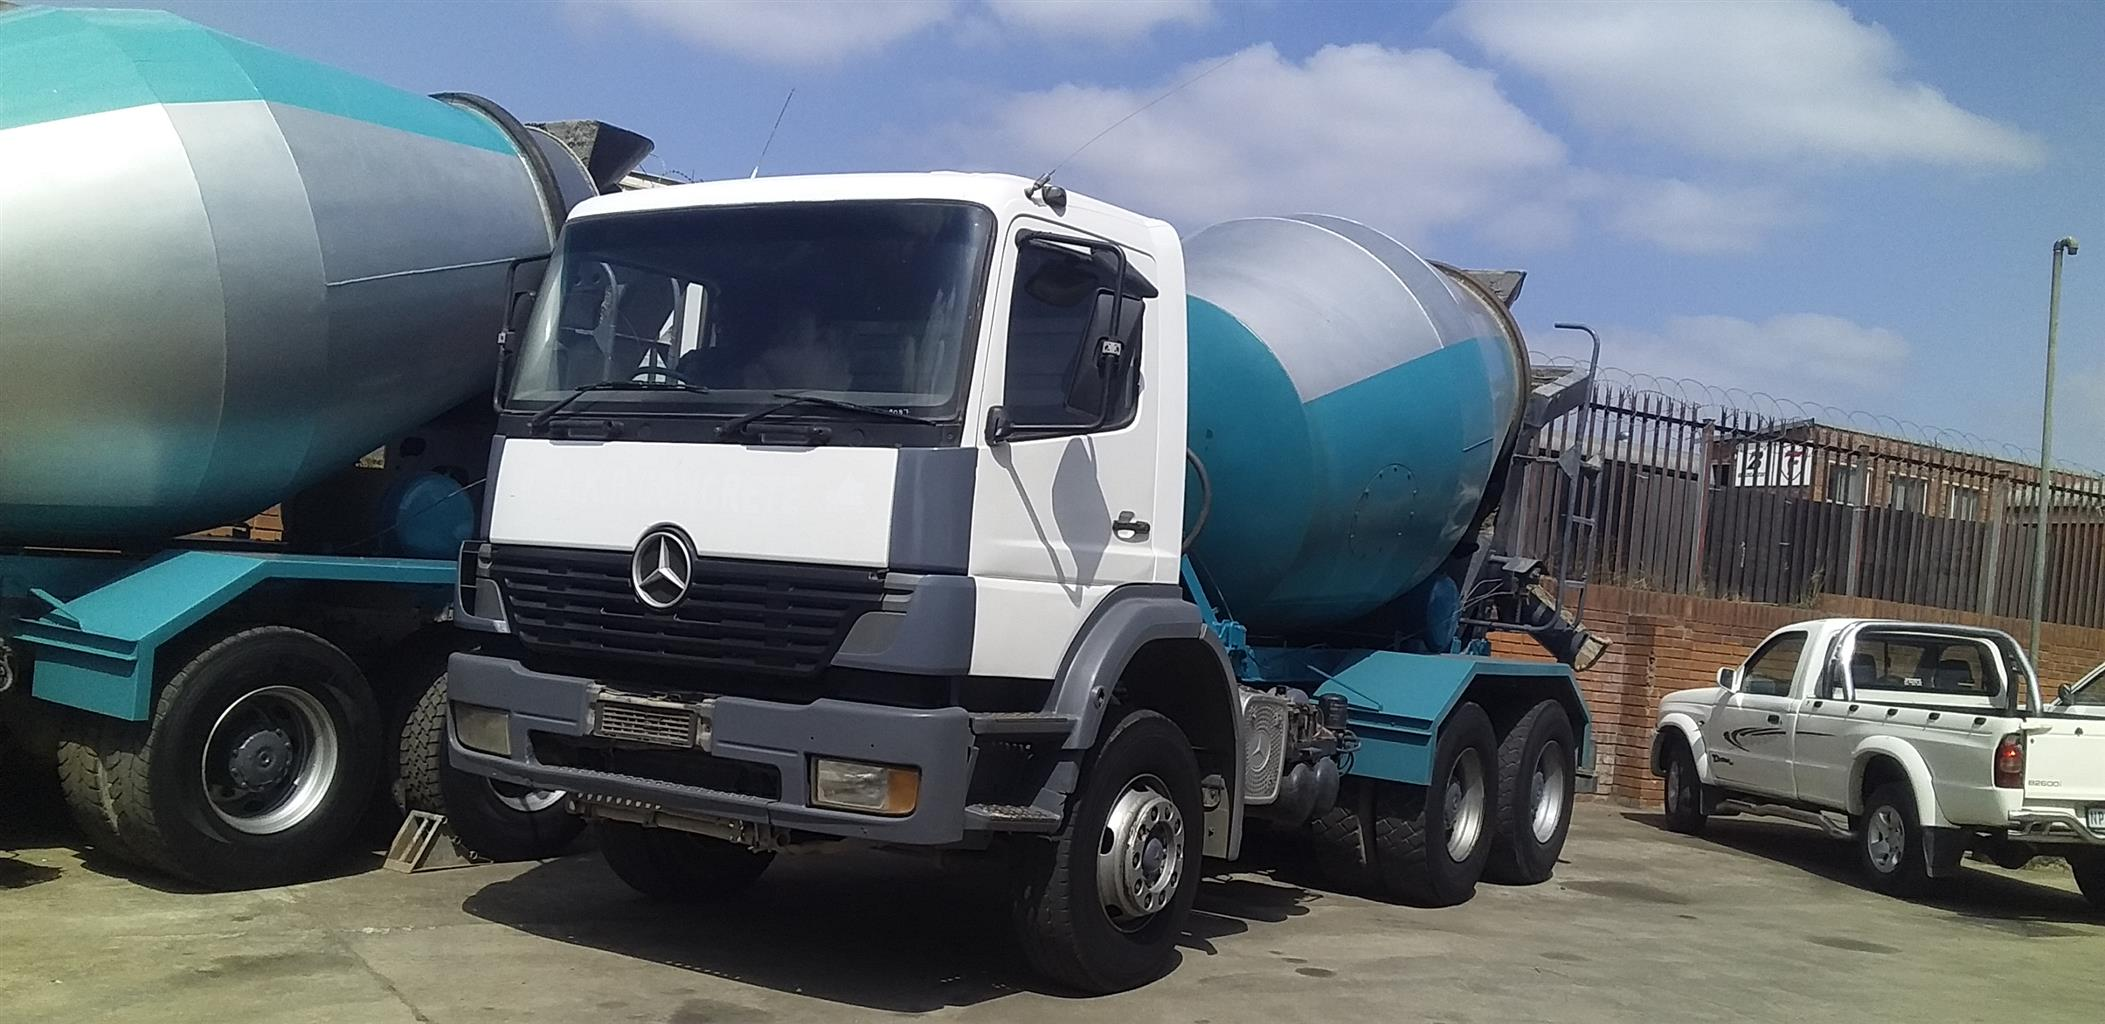 2001 MERCEDES BENZ CONCRETE MIXER